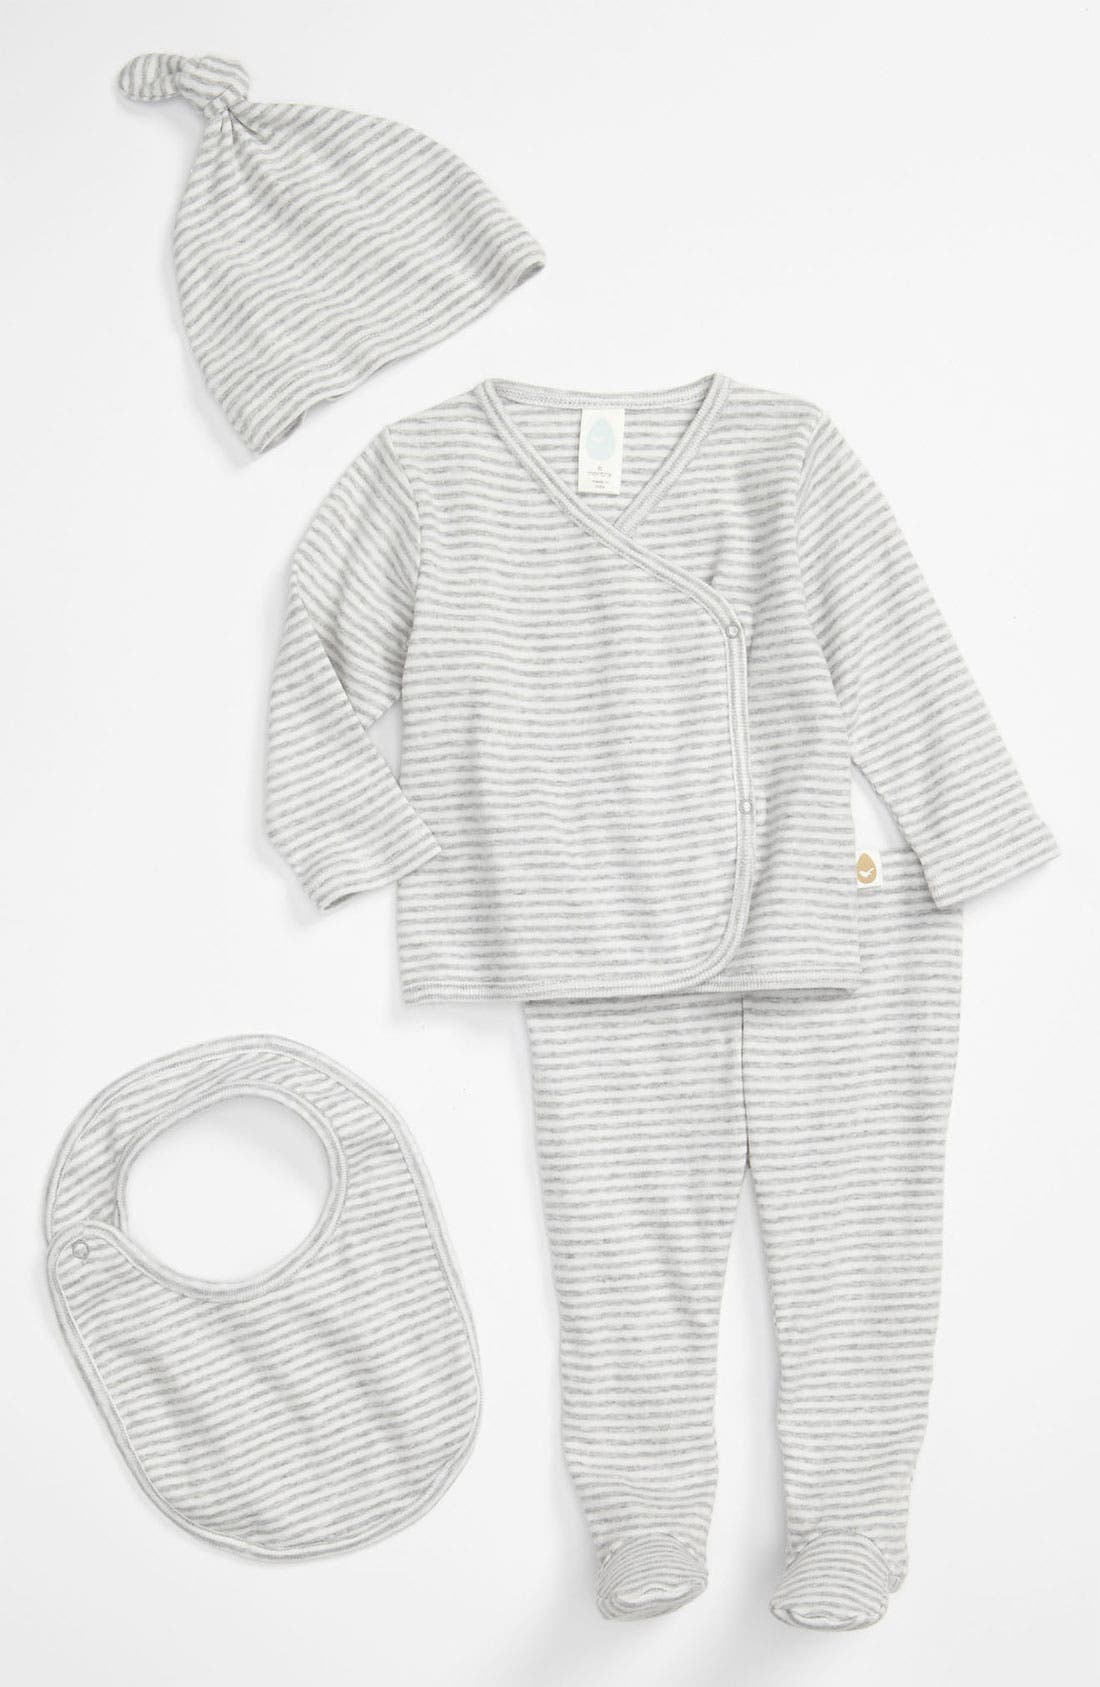 Alternate Image 1 Selected - Stem Baby Organic Cotton Shirt, Pants, Hat & Bib (Baby Boys)